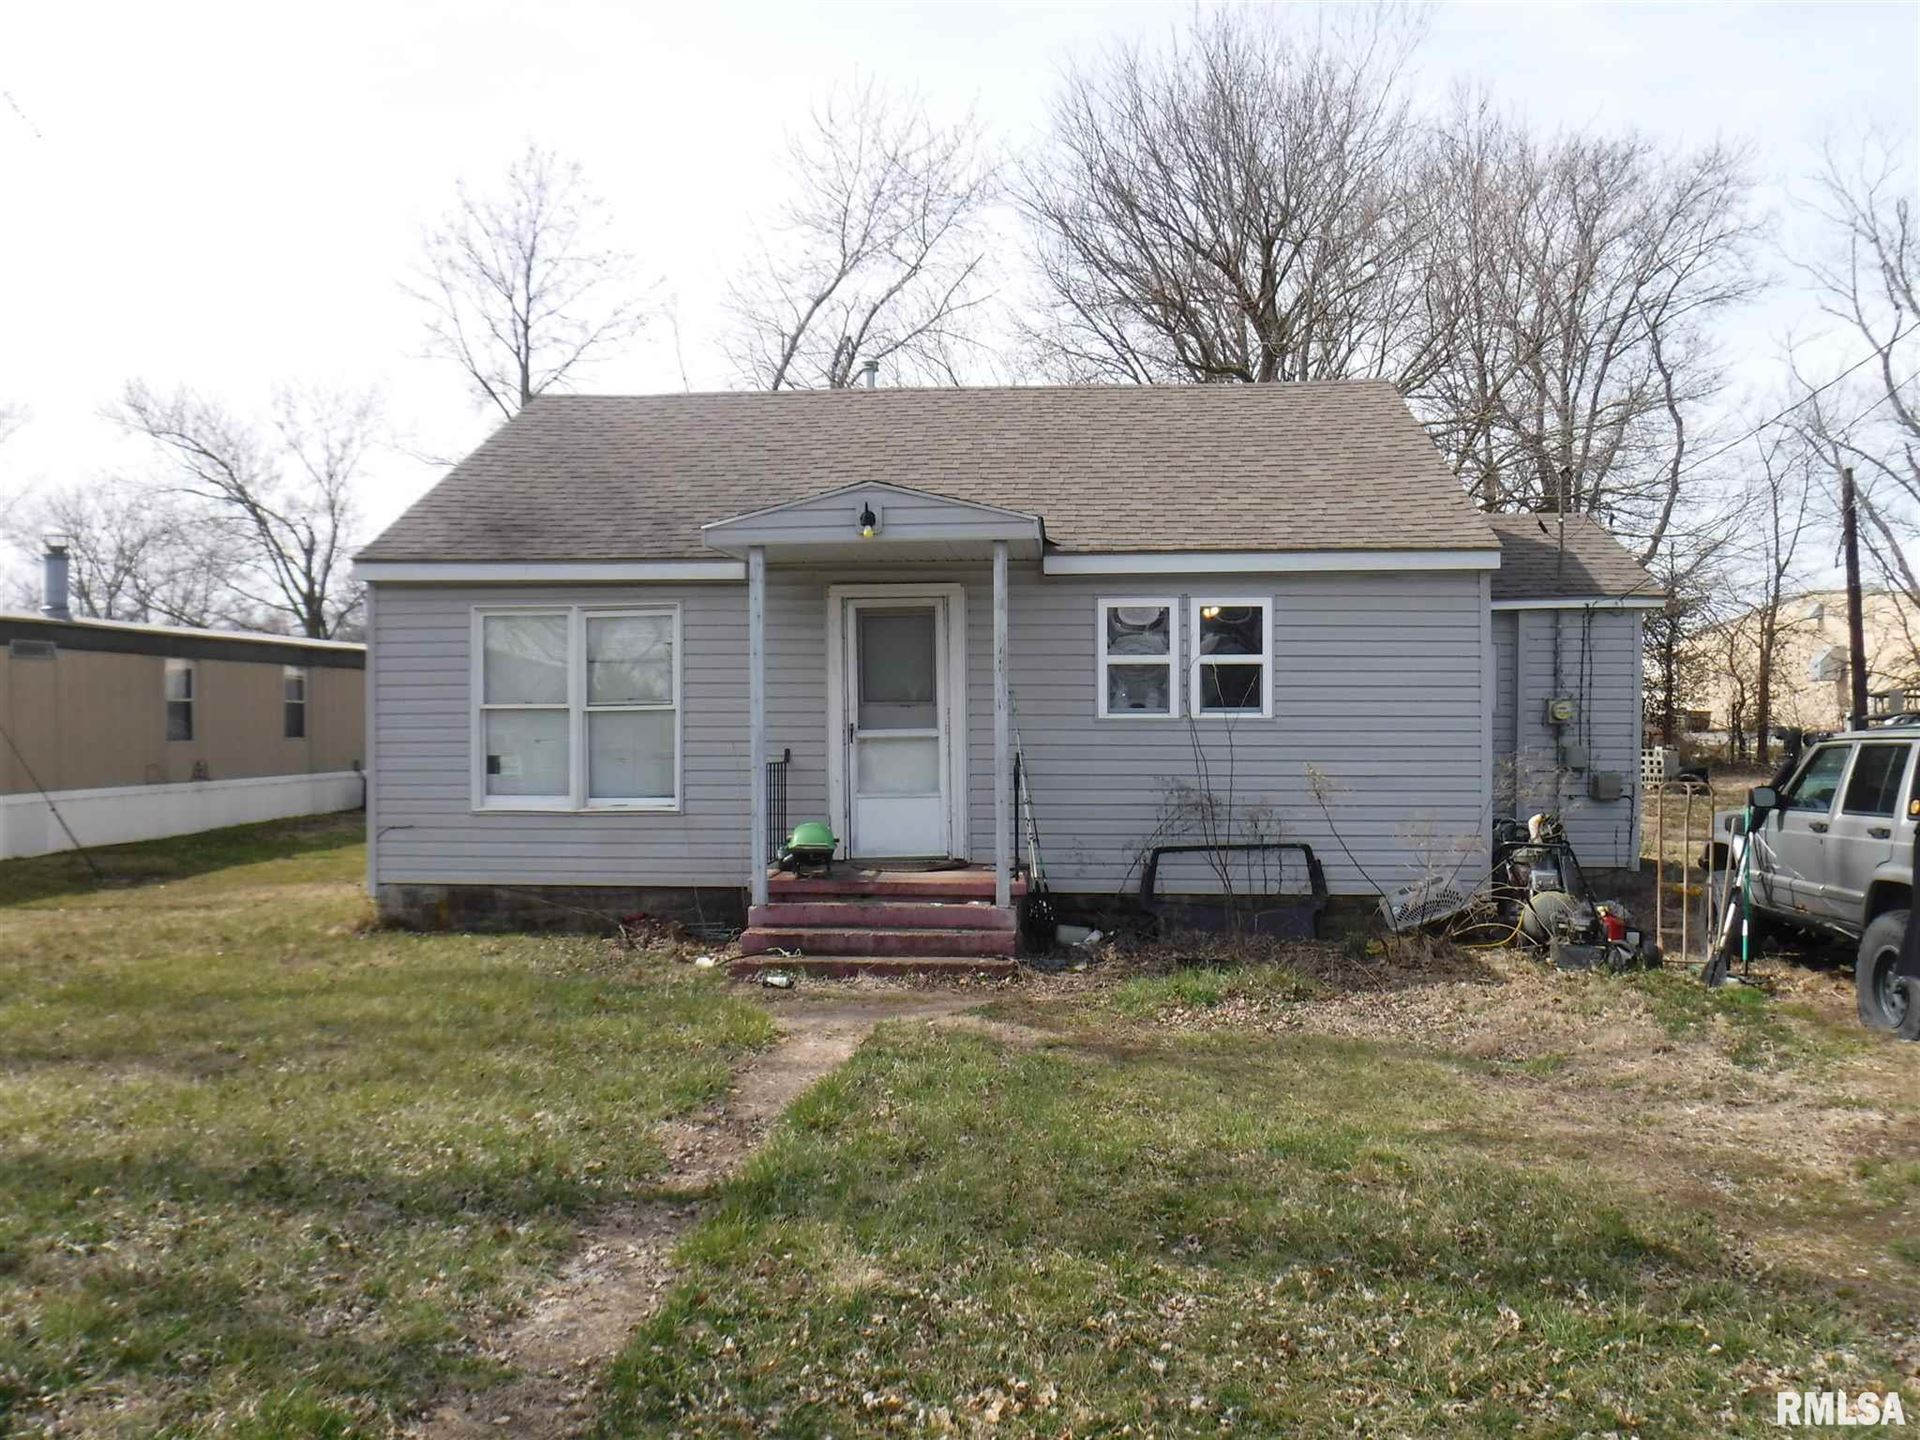 1237 S FRANKLIN Street, Salem, IL 62881 - MLS#: EB433210